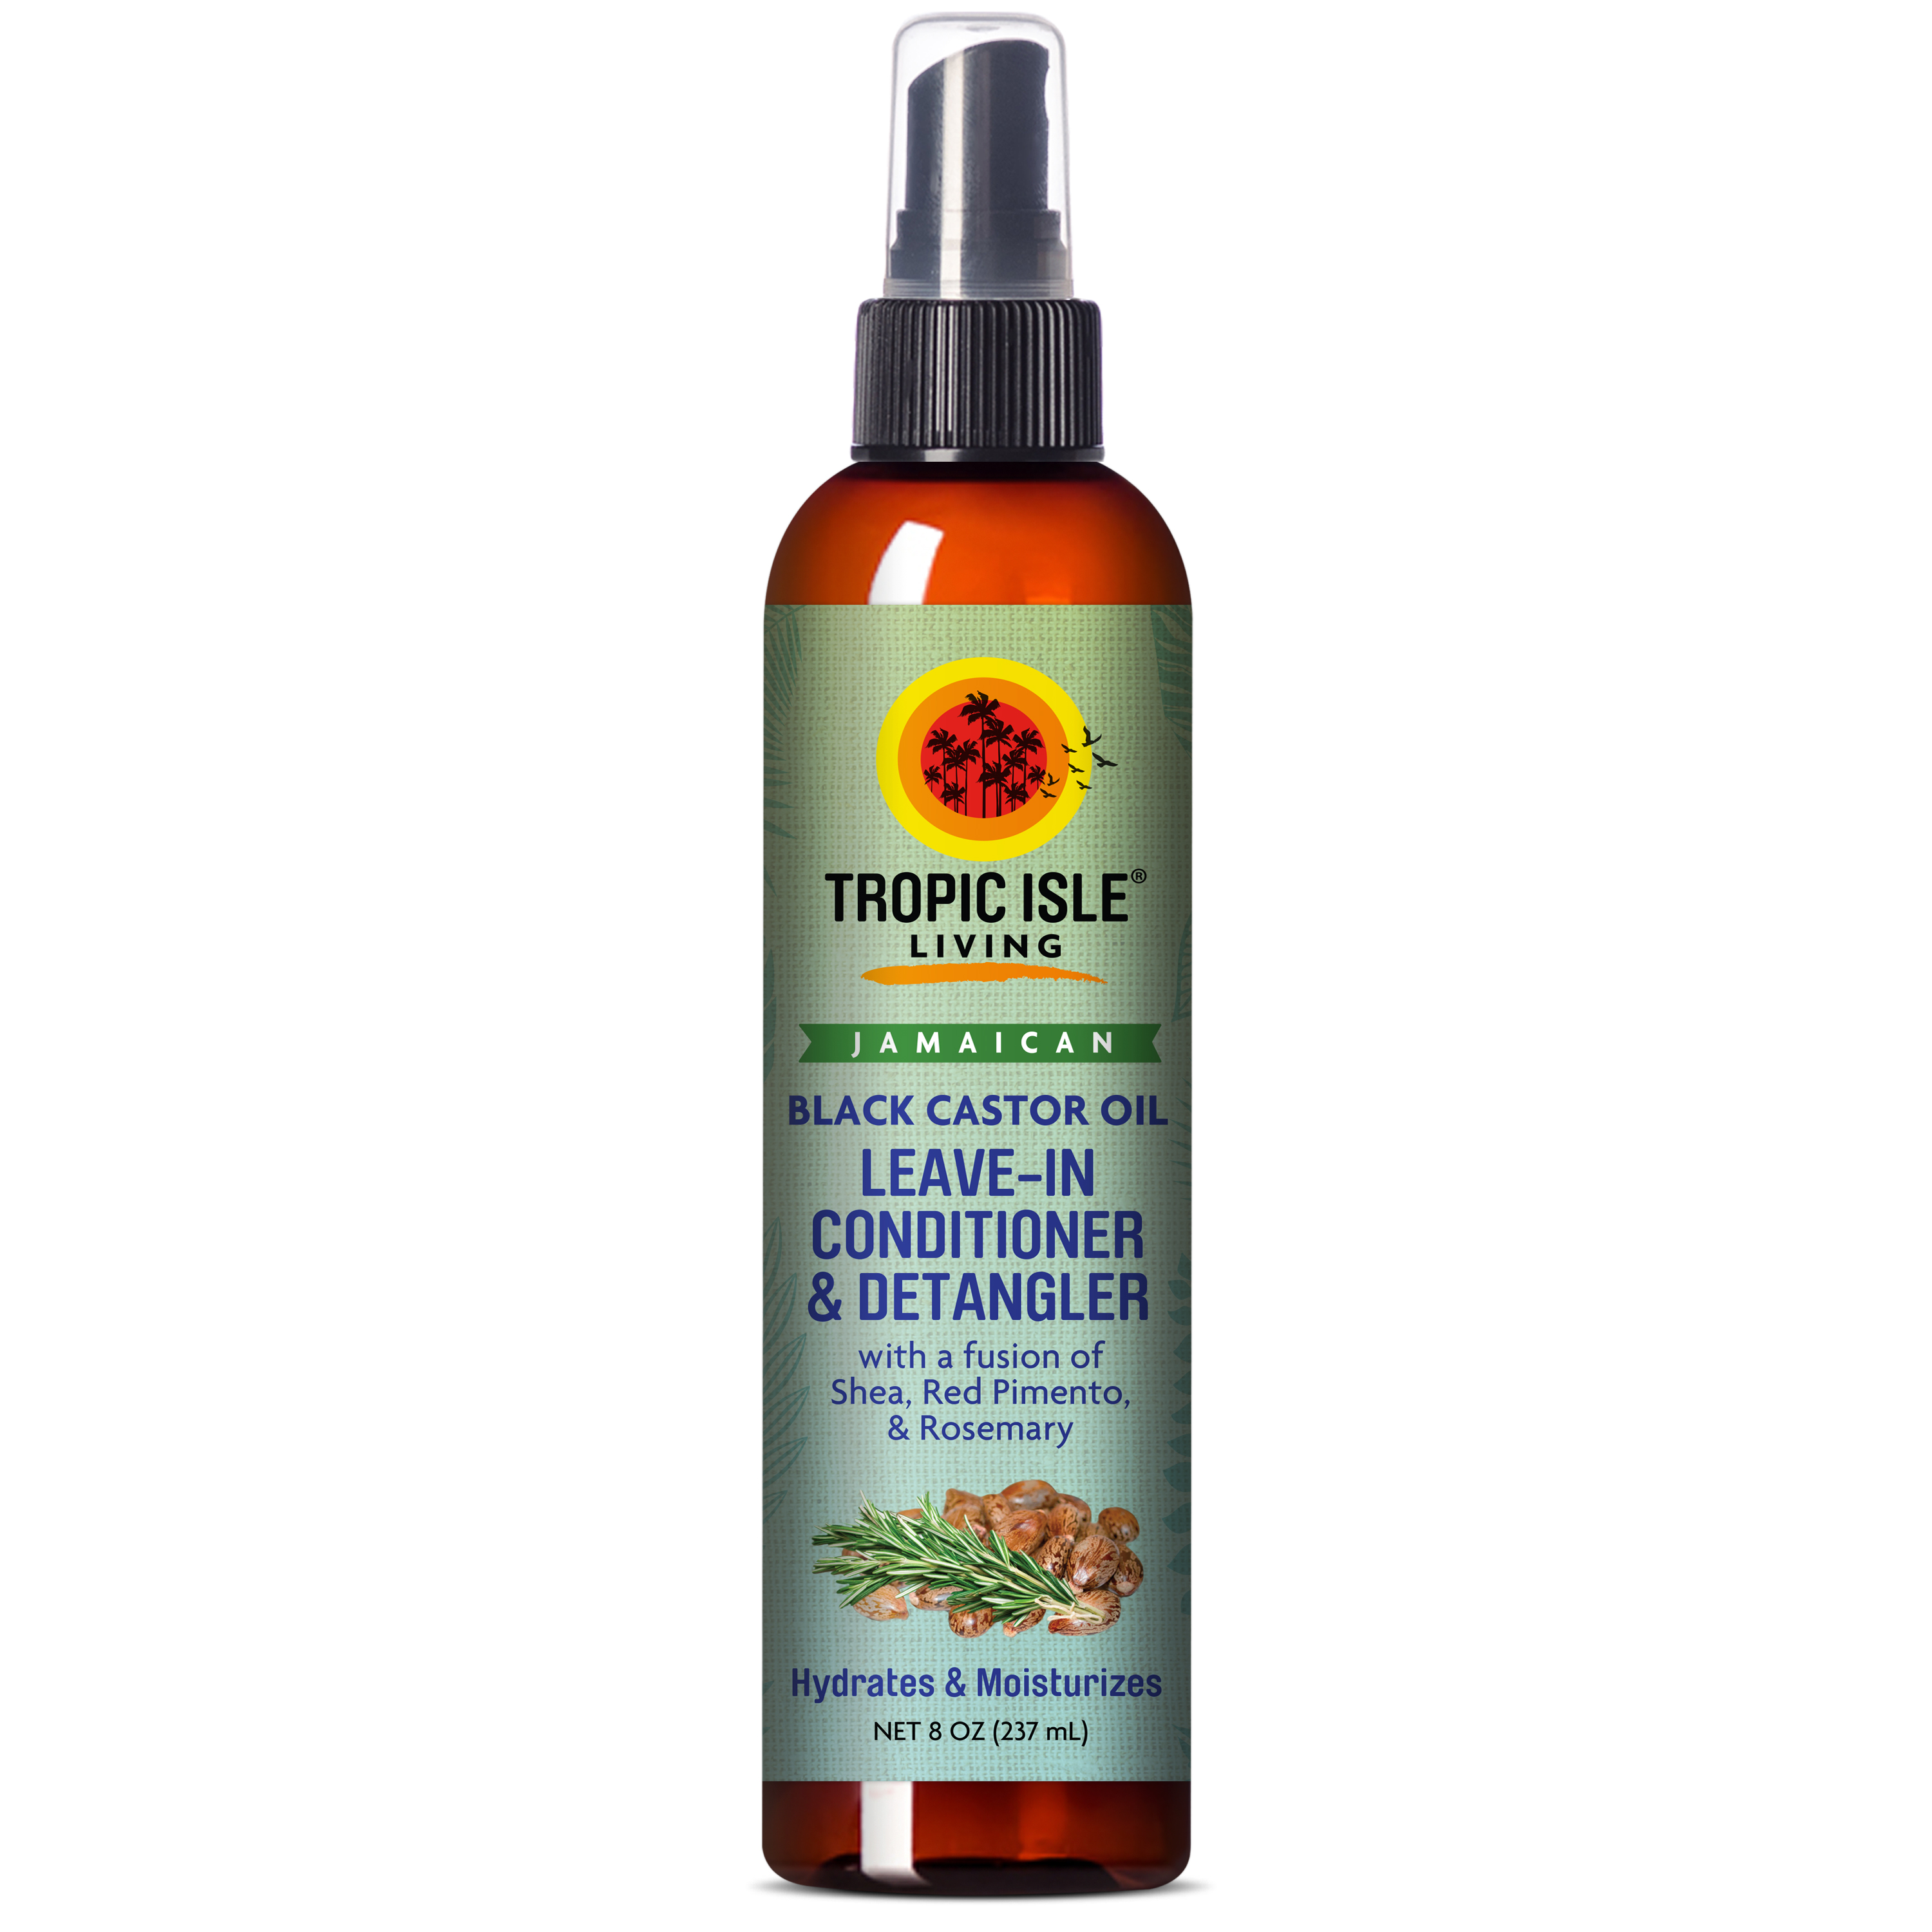 Leave-In Conditioner: Tropic Isle Living- Jamaican Black Castor Oil Leave-In Conditioner & Detangler